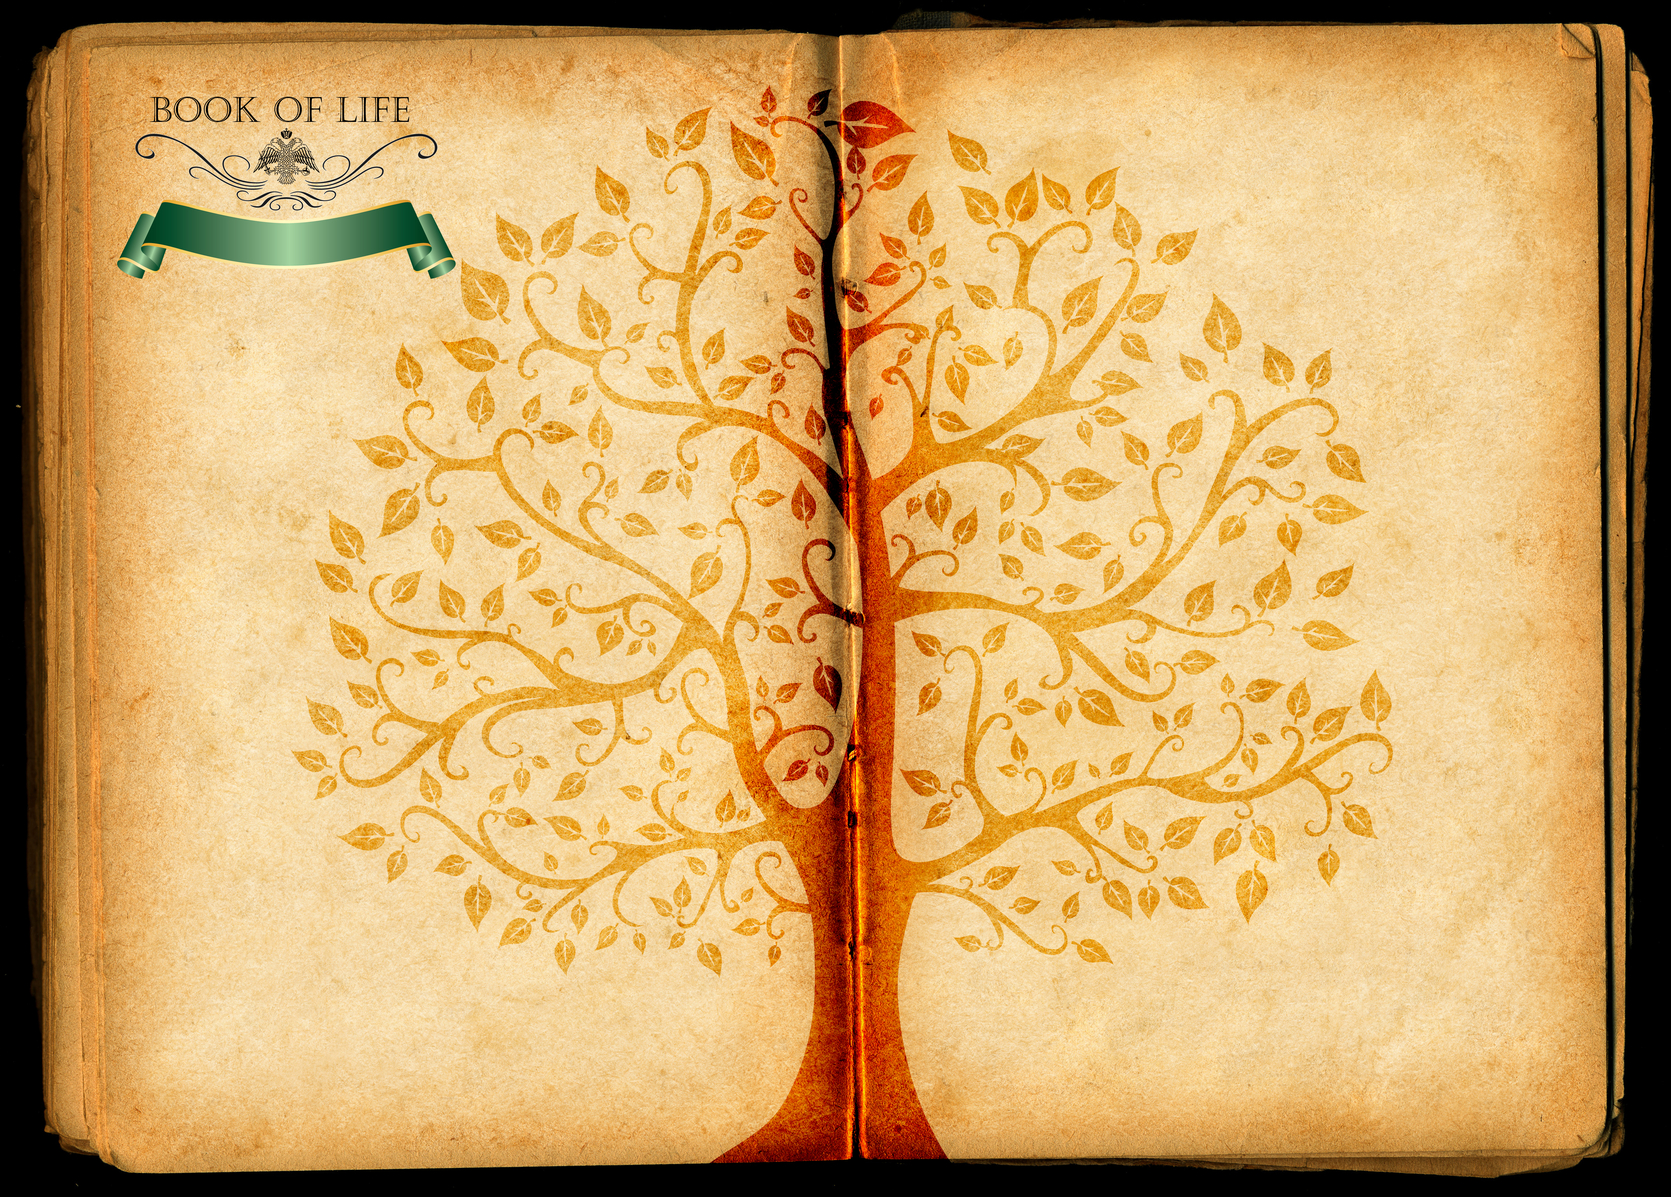 Tree of Life illustration